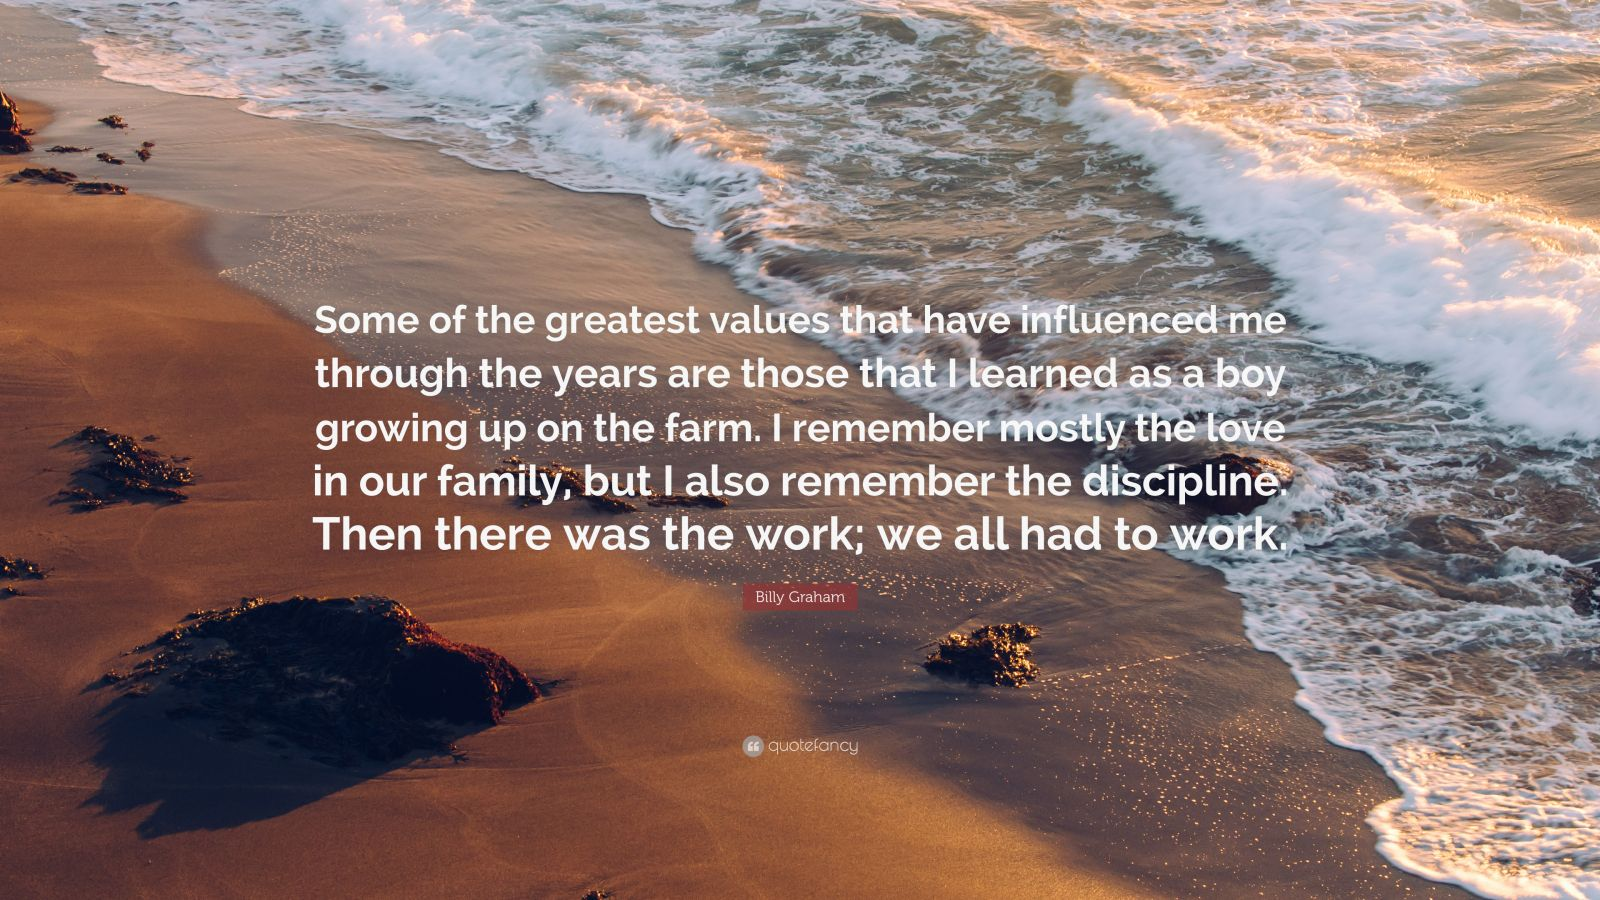 """Billy Graham Quote: """"Some of the greatest values that have influenced me through the years are those that I learned as a boy growing up on the farm. I remember mostly the love in our family, but I also remember the discipline. Then there was the work; we all had to work."""""""